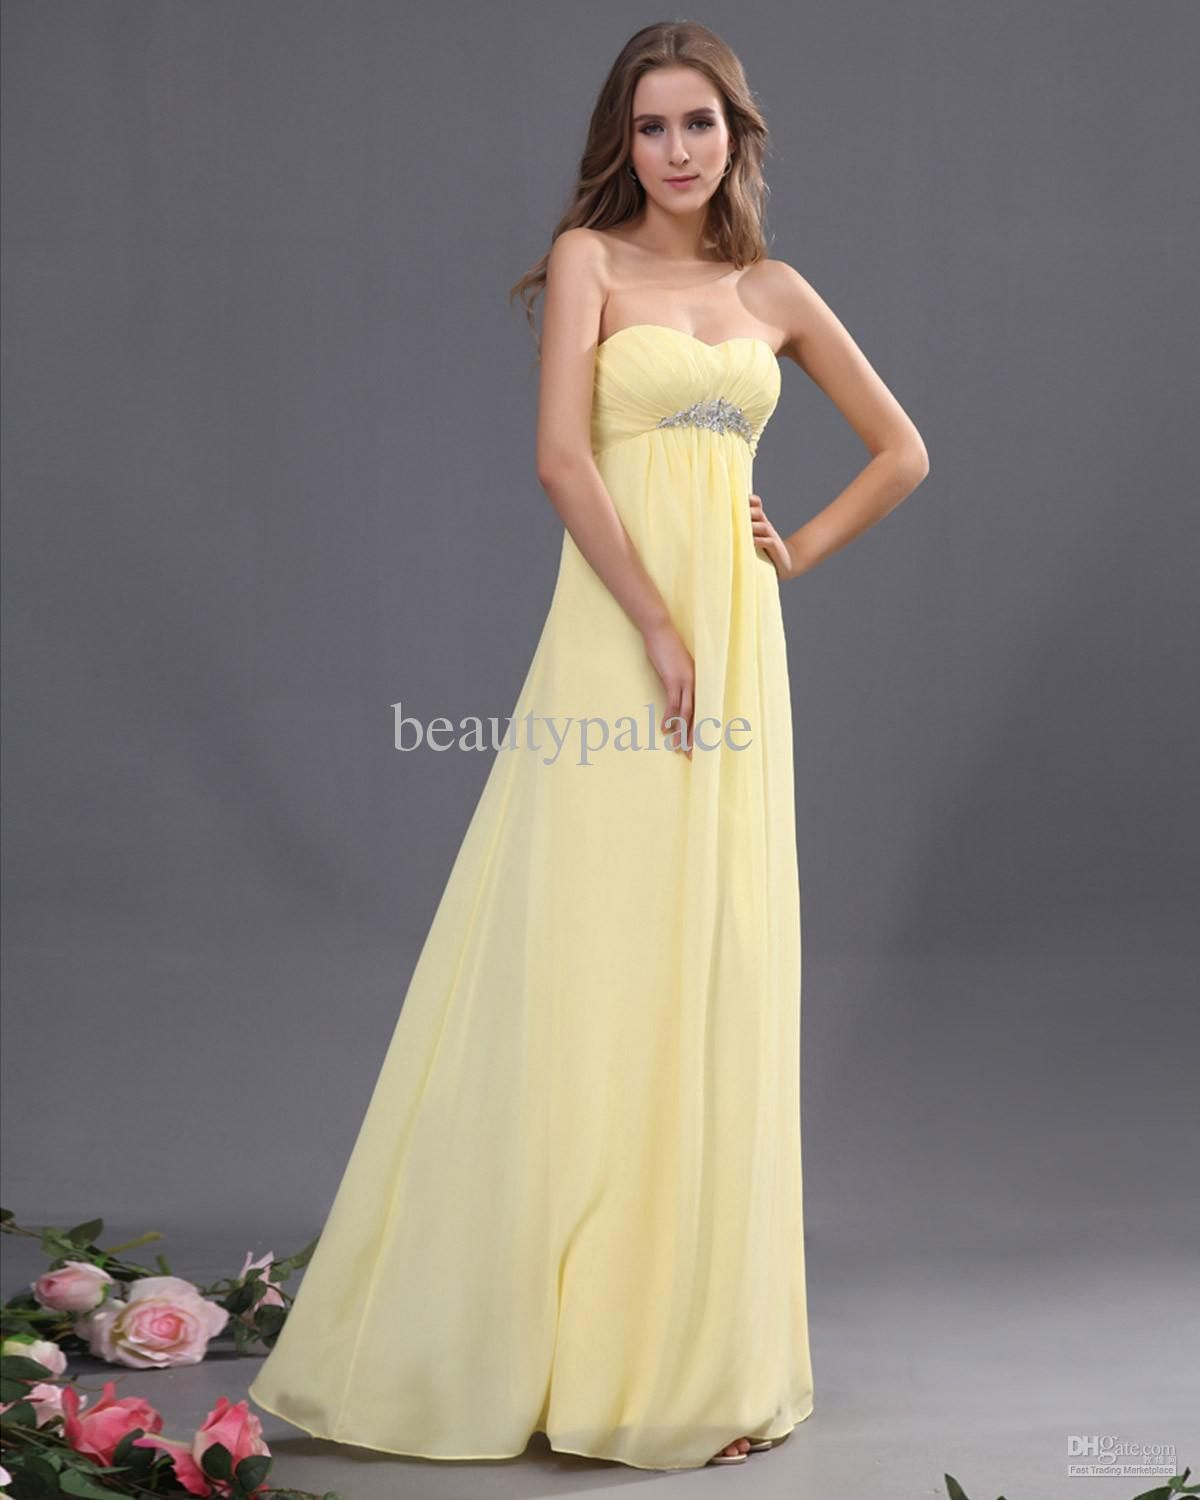 Yellow and Gray Bridesmaid Dresses Under $50